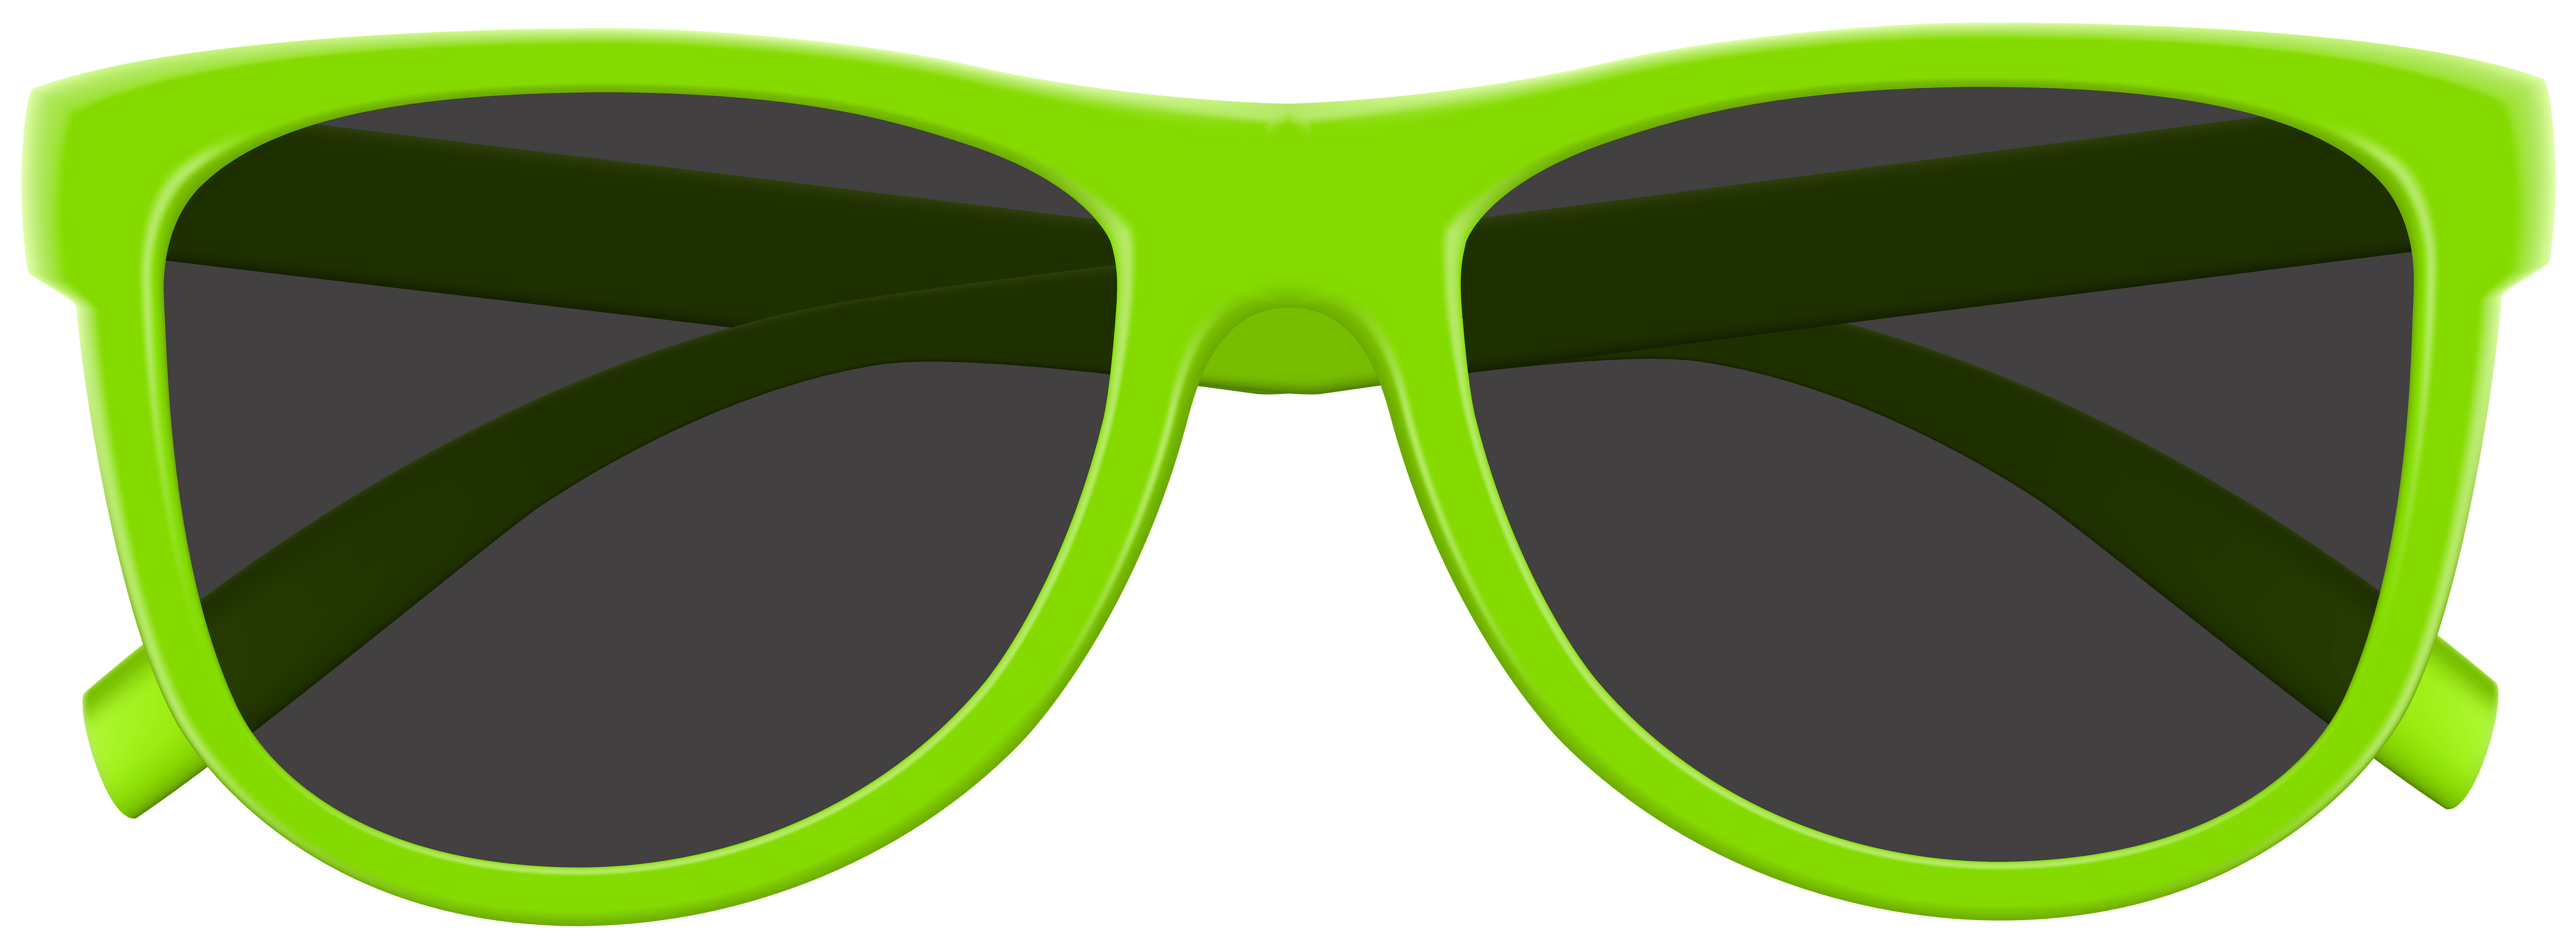 Green sun glasses clipart banner freeuse download Green Sunglasses PNG Clip Art Image | Gallery Yopriceville - High ... banner freeuse download